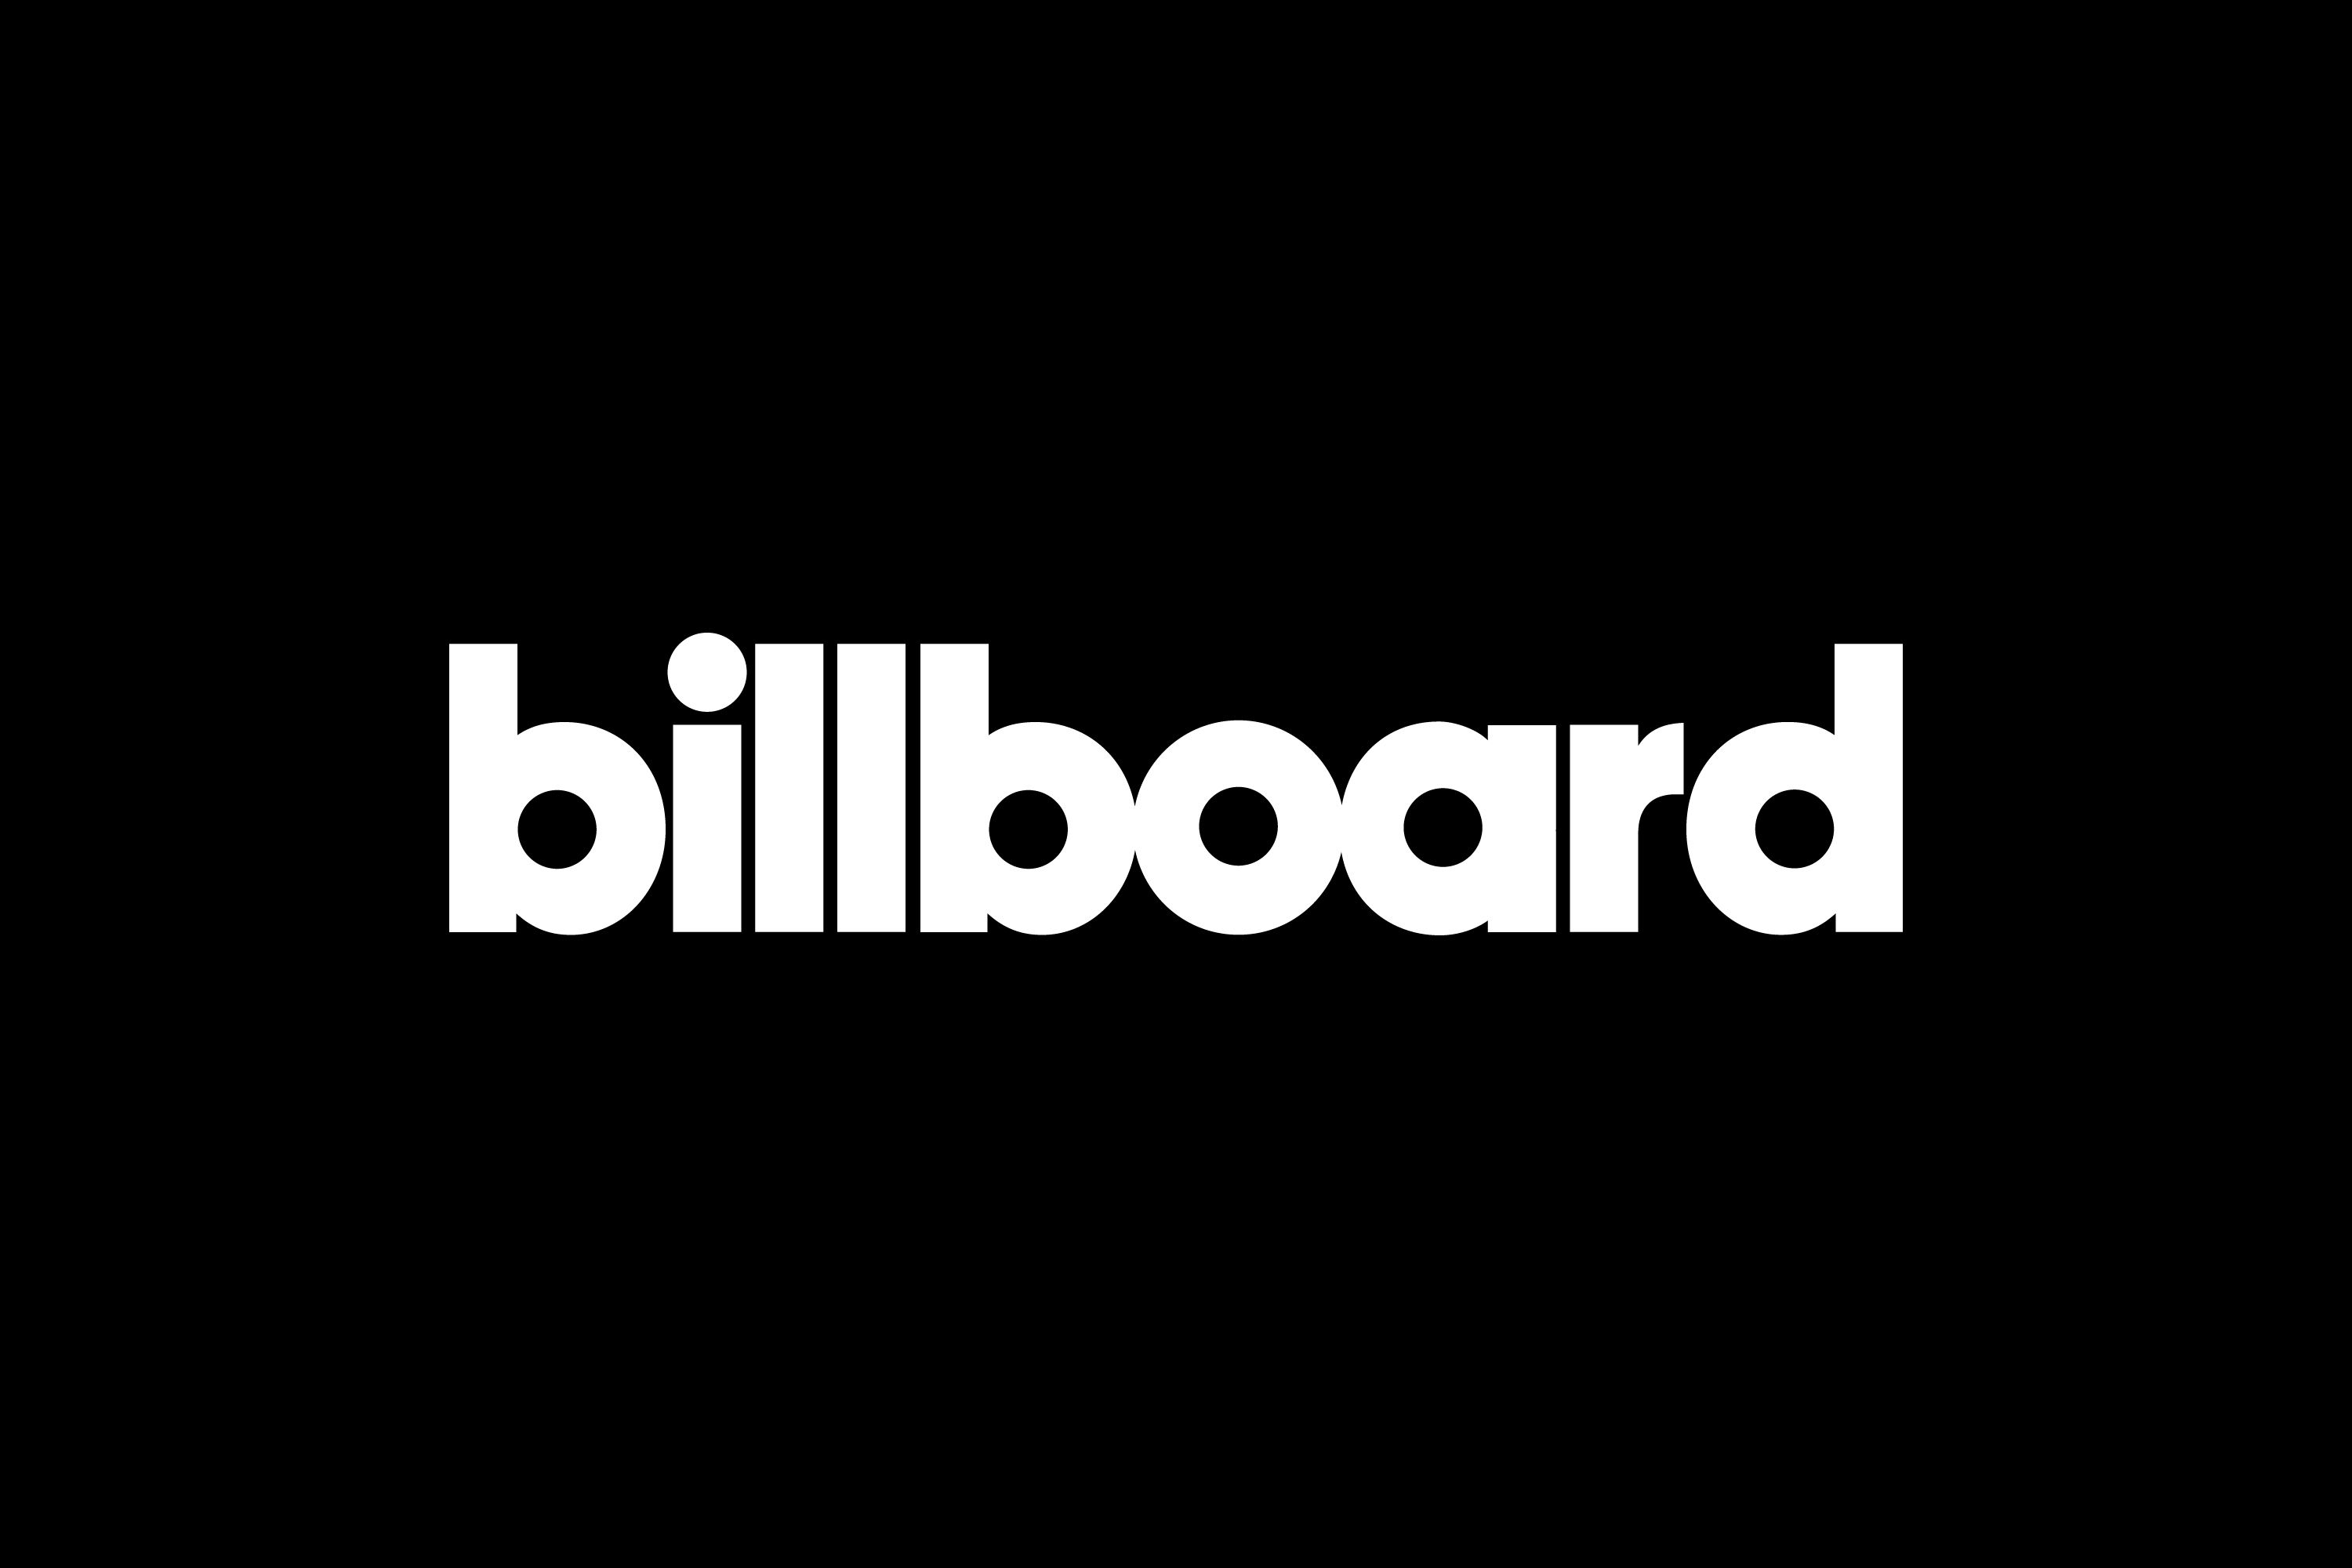 Billboard by Pentagram (With images) | Billboard, Music logo ...